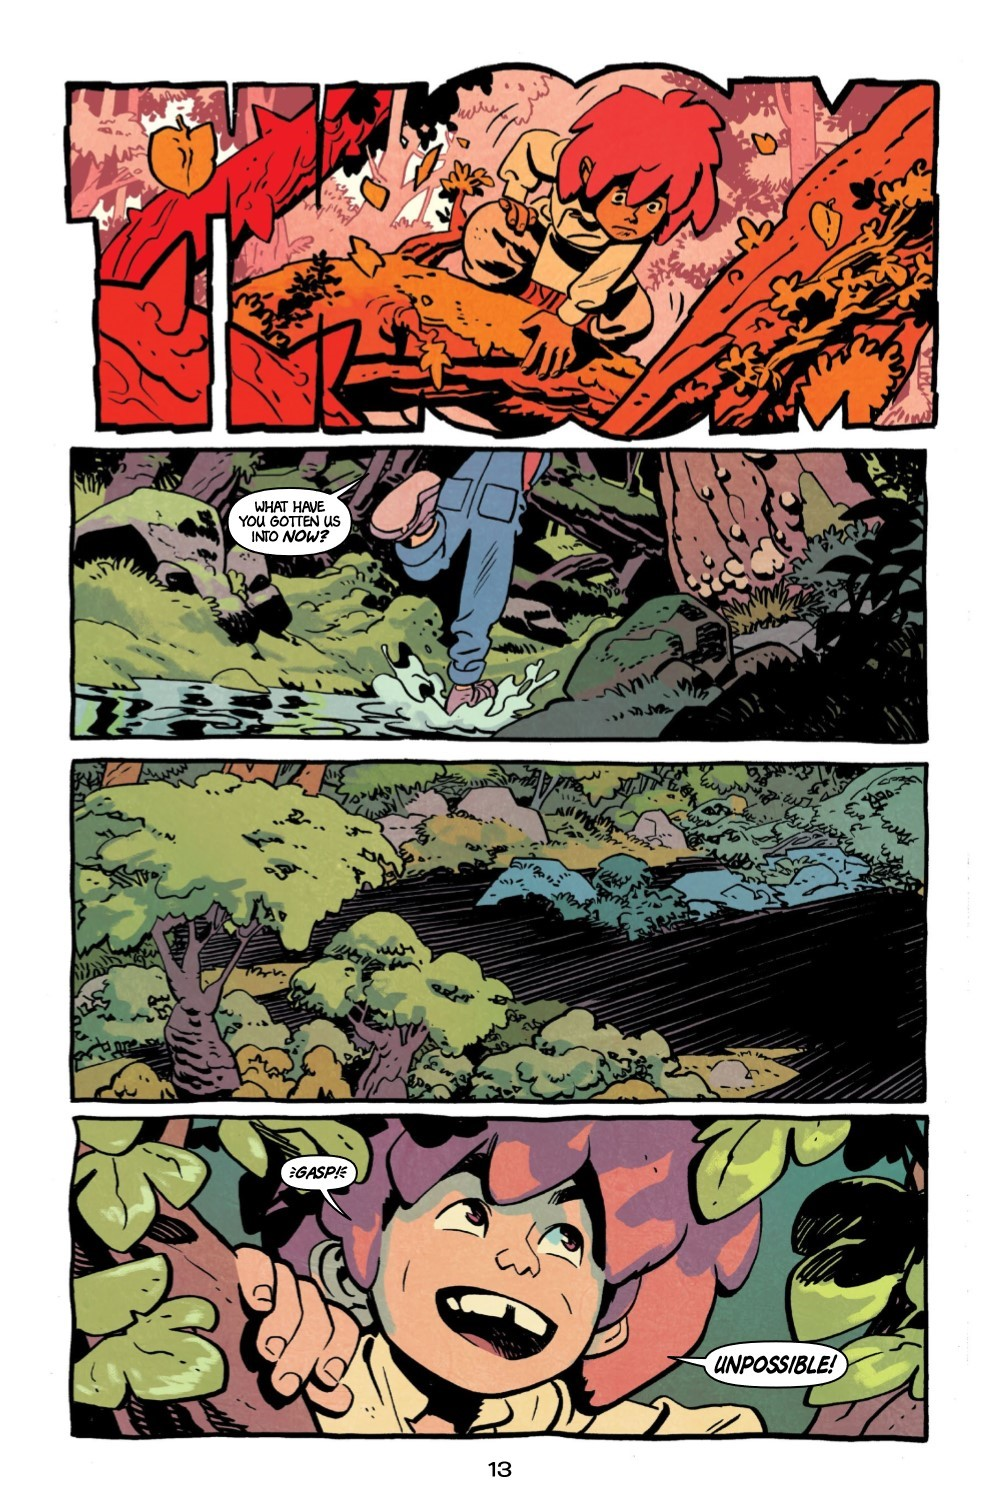 JONNA-V1-REFERENCE-014 ComicList Previews: JONNA AND THE UNPOSSIBLE MONSTER VOLUME 1 TP